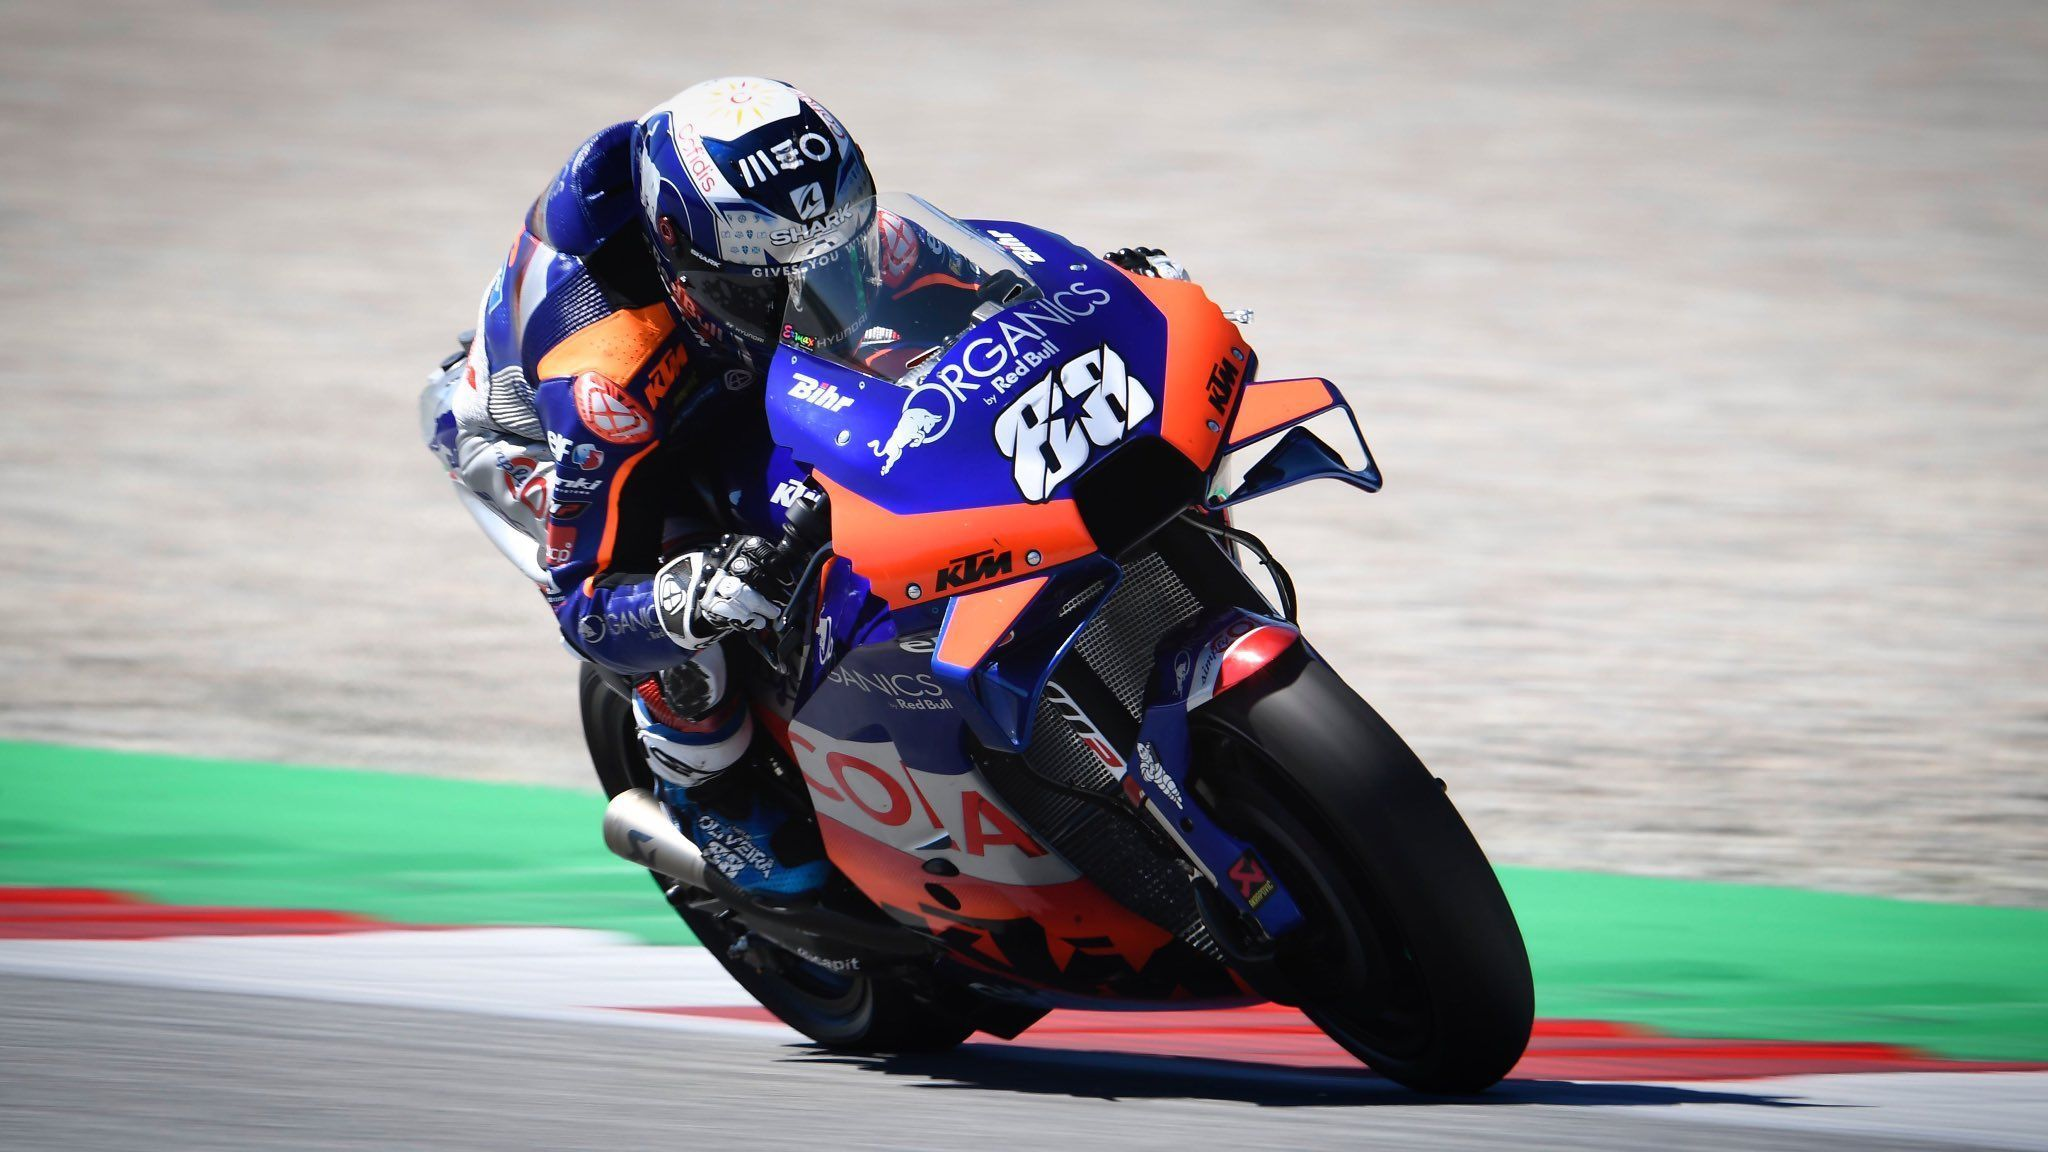 Motogp Oliveira Has First Win In Austria From Miller Espargaro After Red Flag